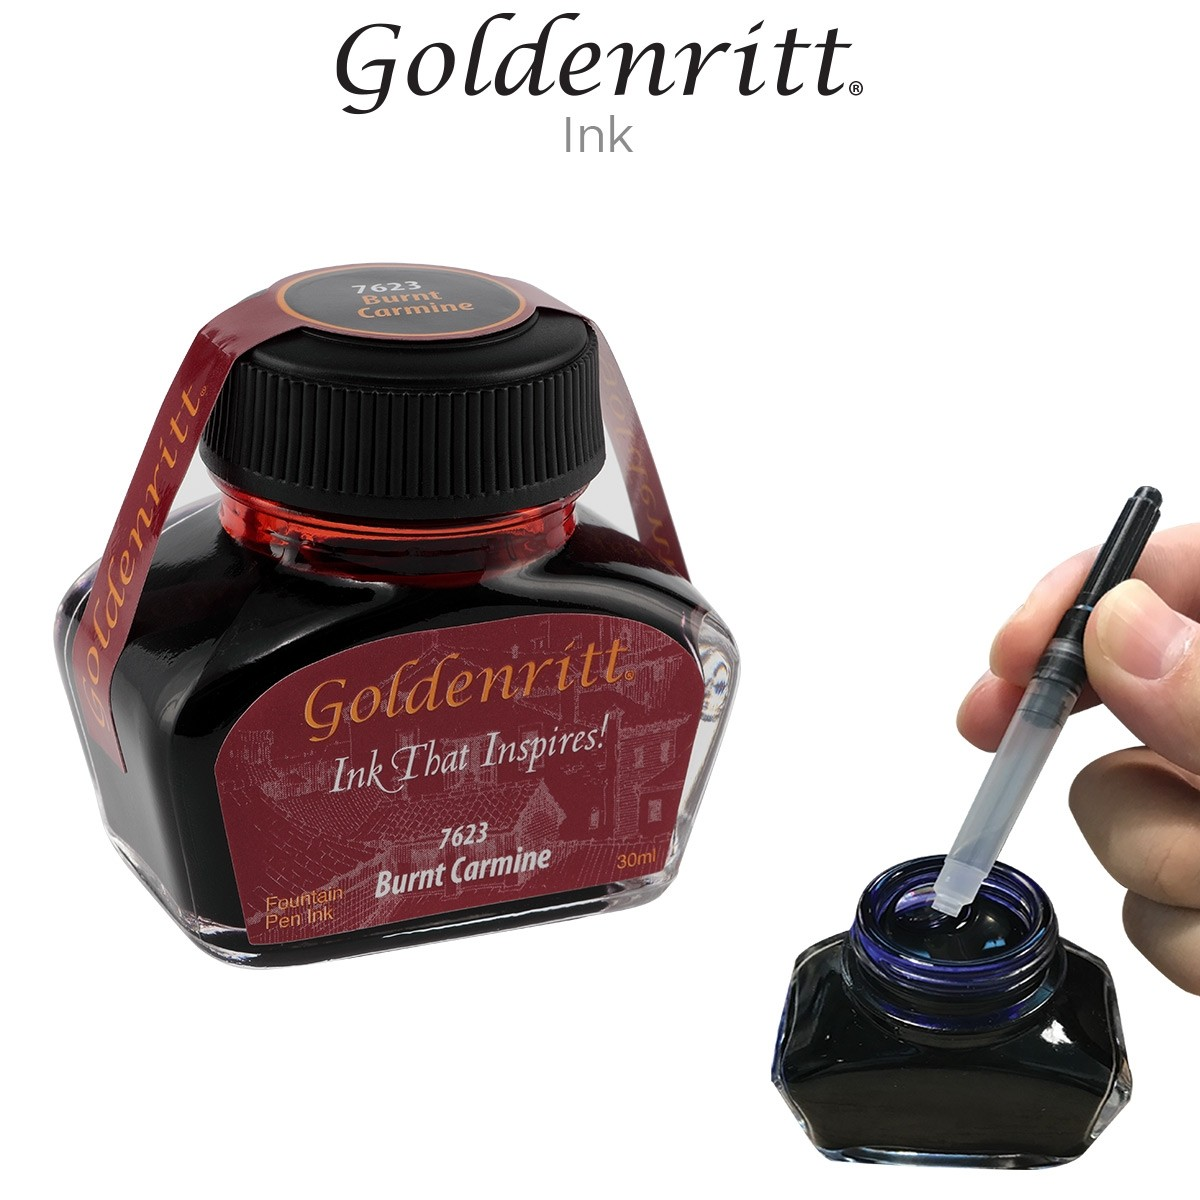 Goldenritt Inks